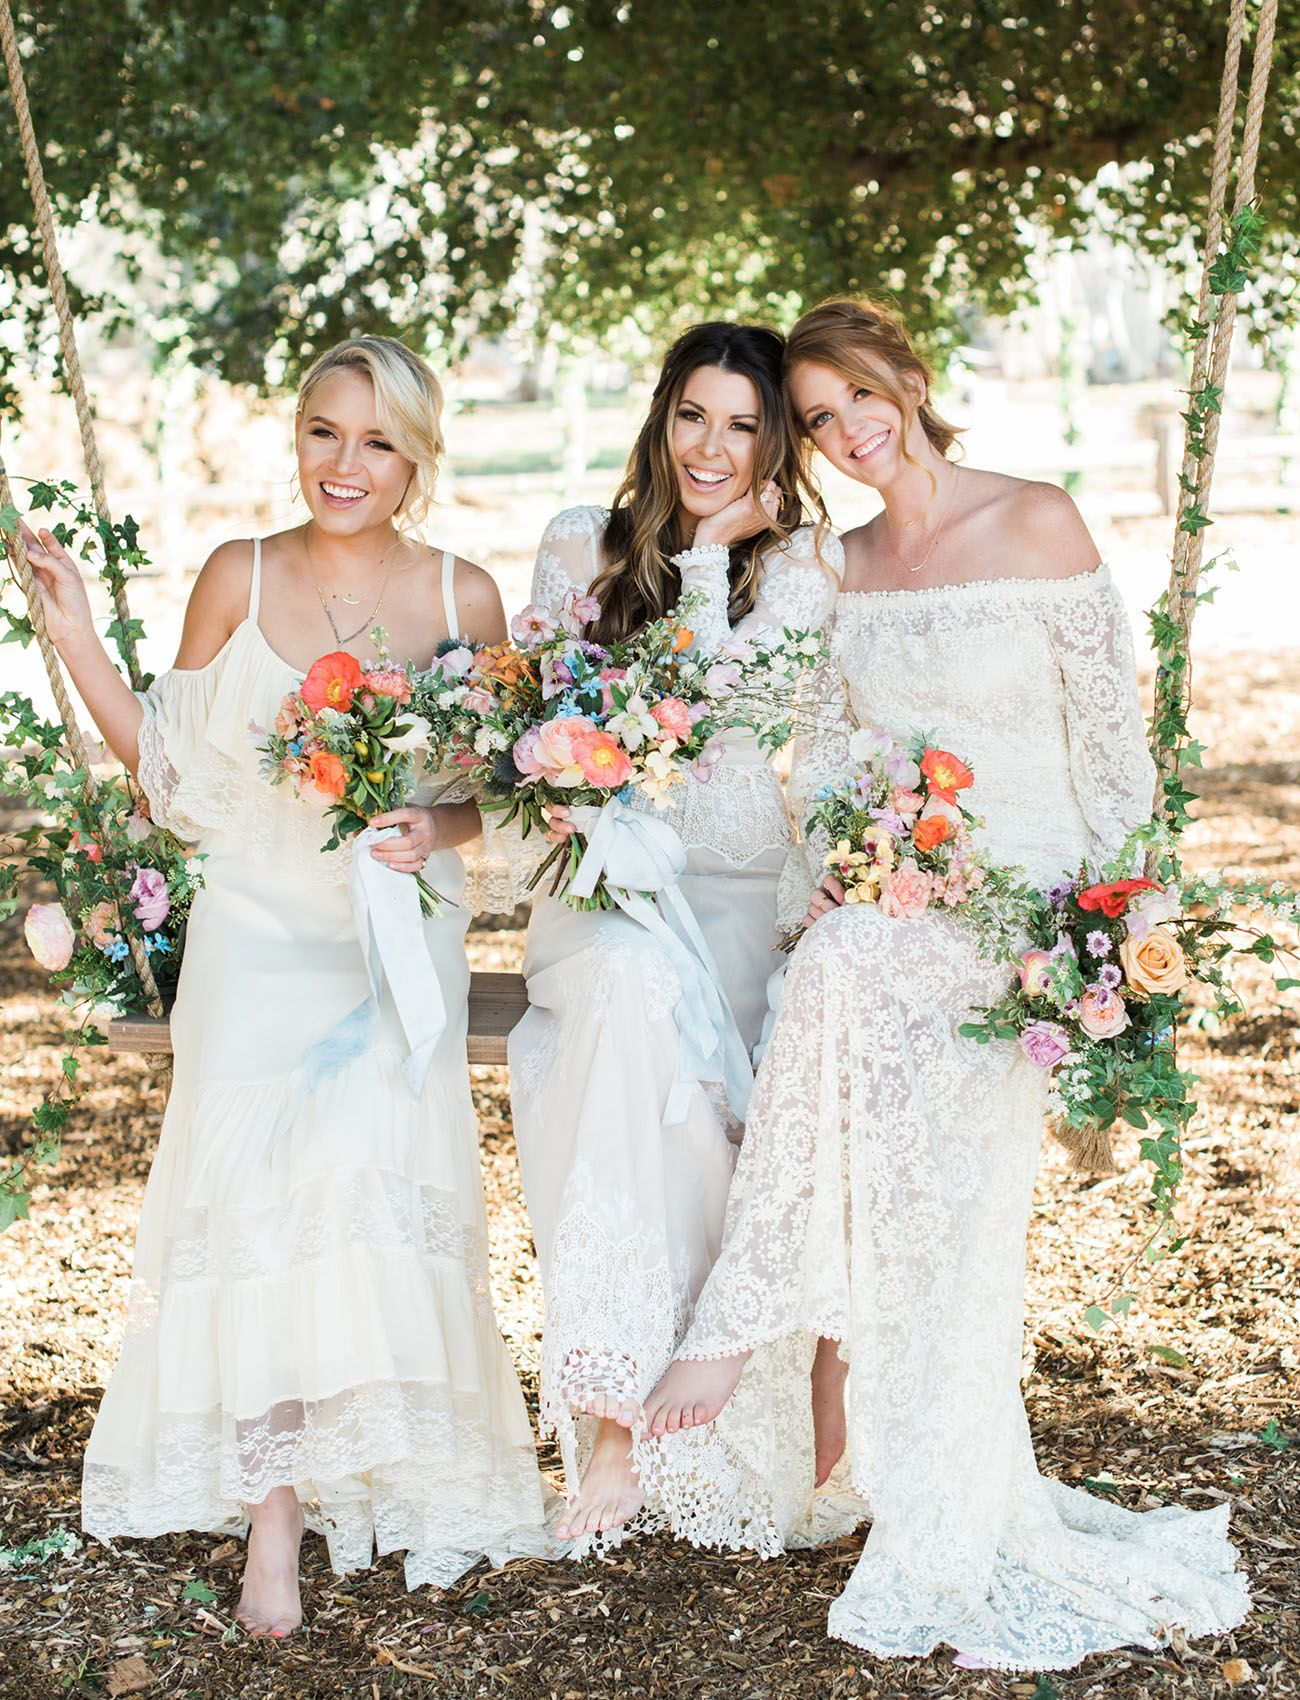 483f4f66457 Boho Chic Meets Geode + Watercolor Pastel Wedding Inspiration ...